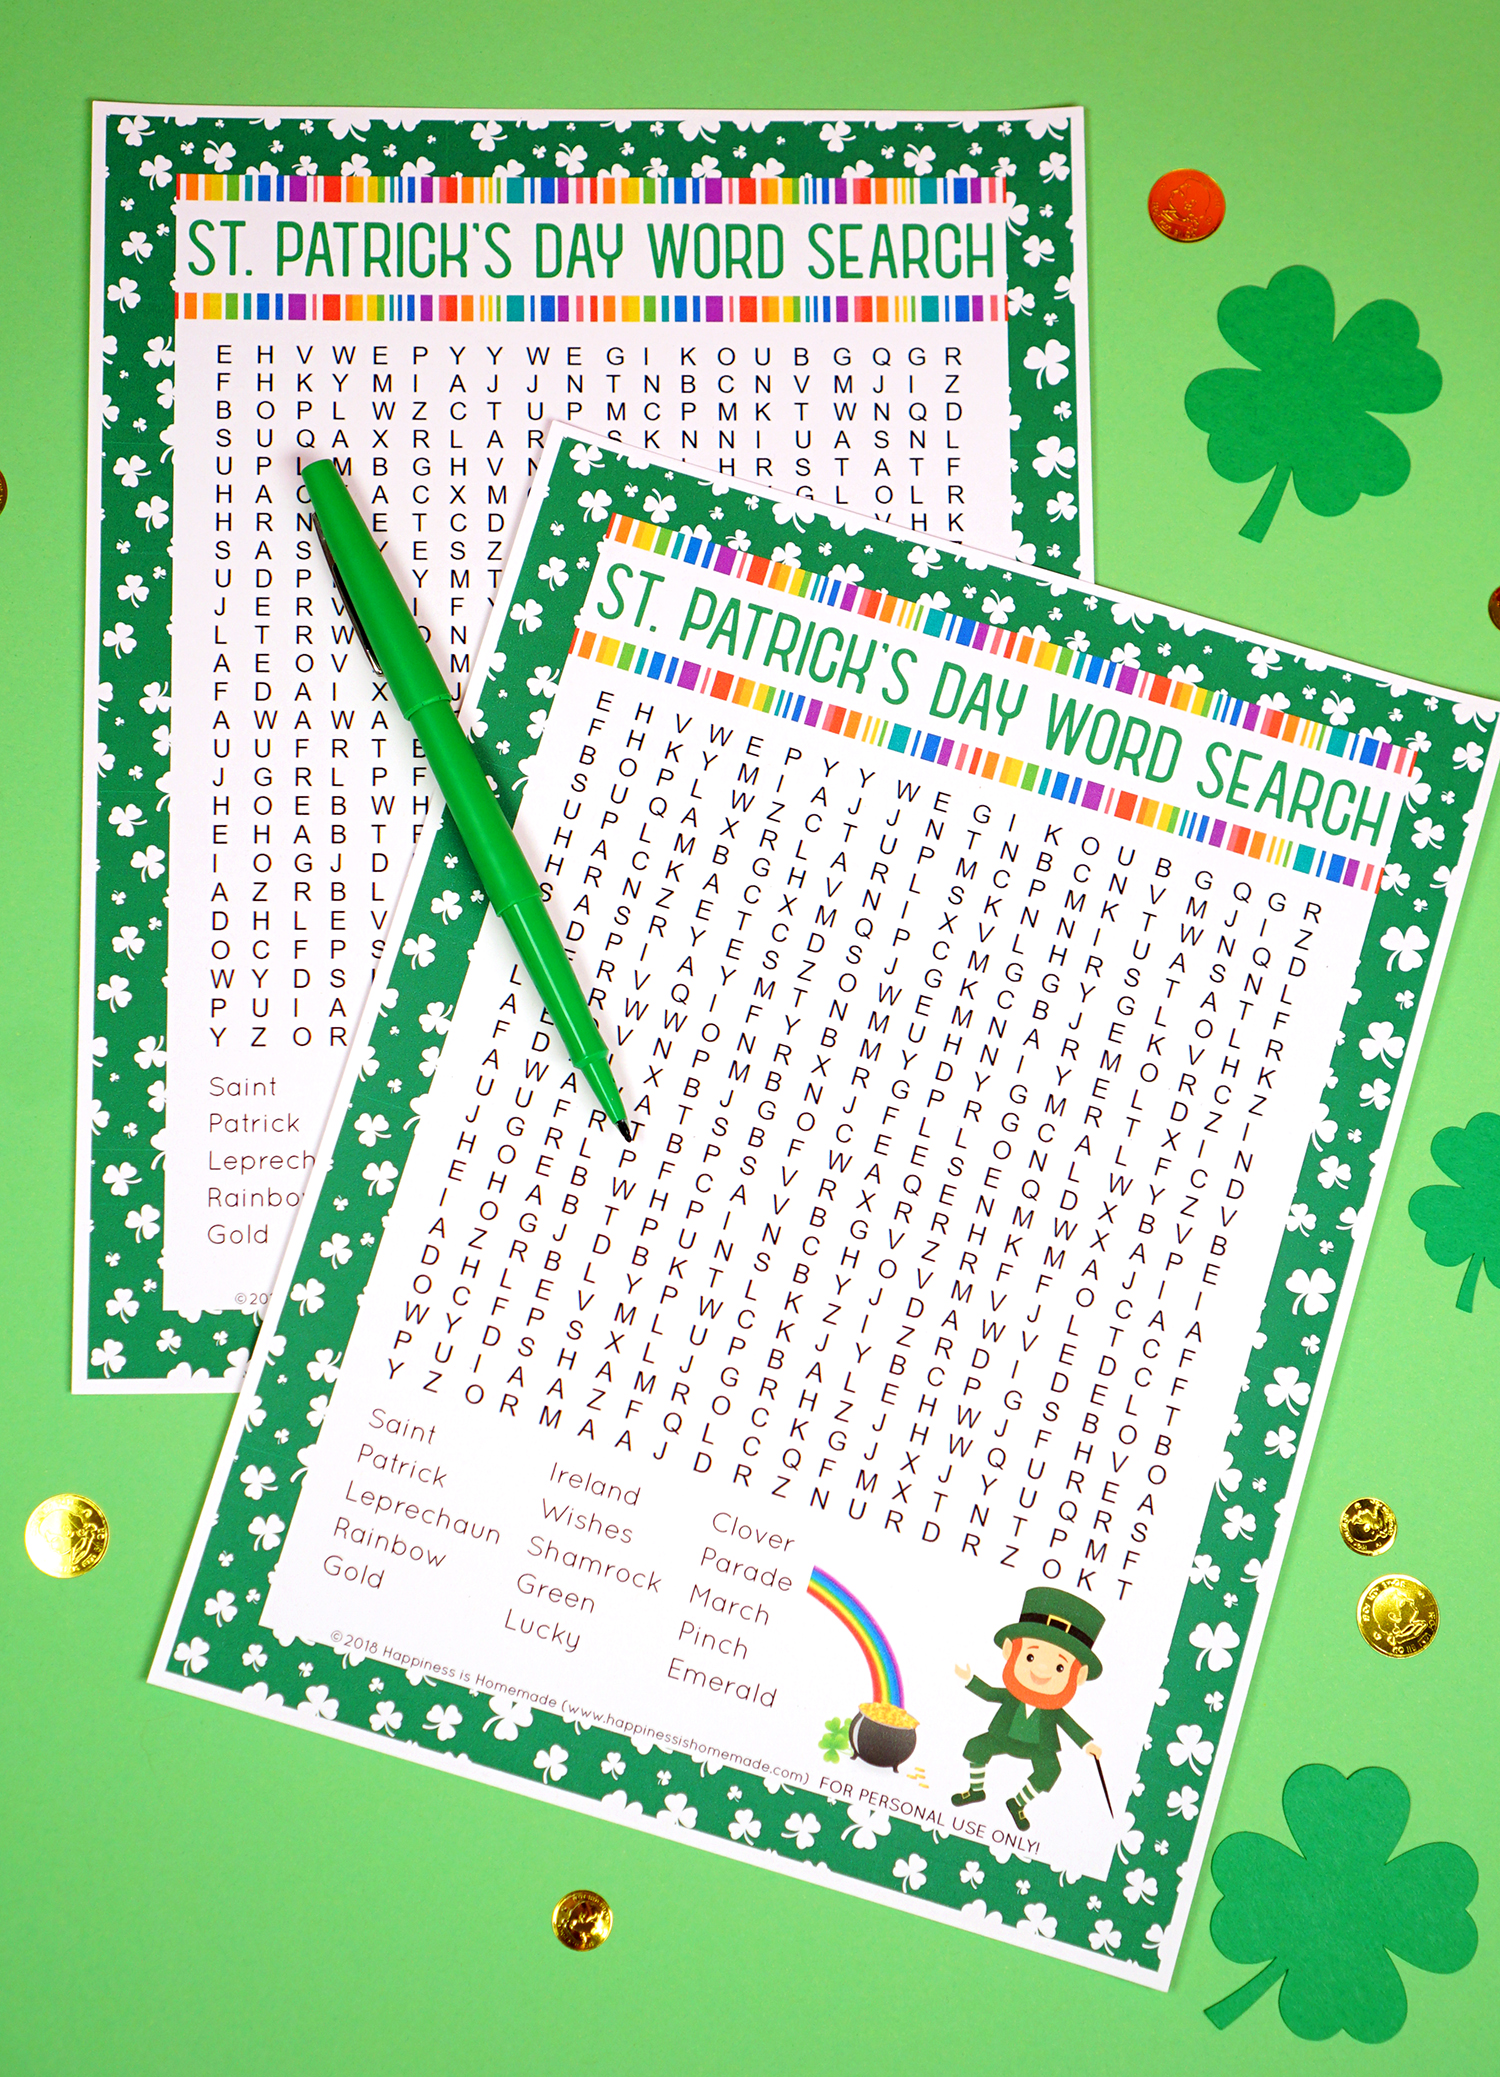 Kids-St-Patricks-Day-Word-Search-Printable.jpg